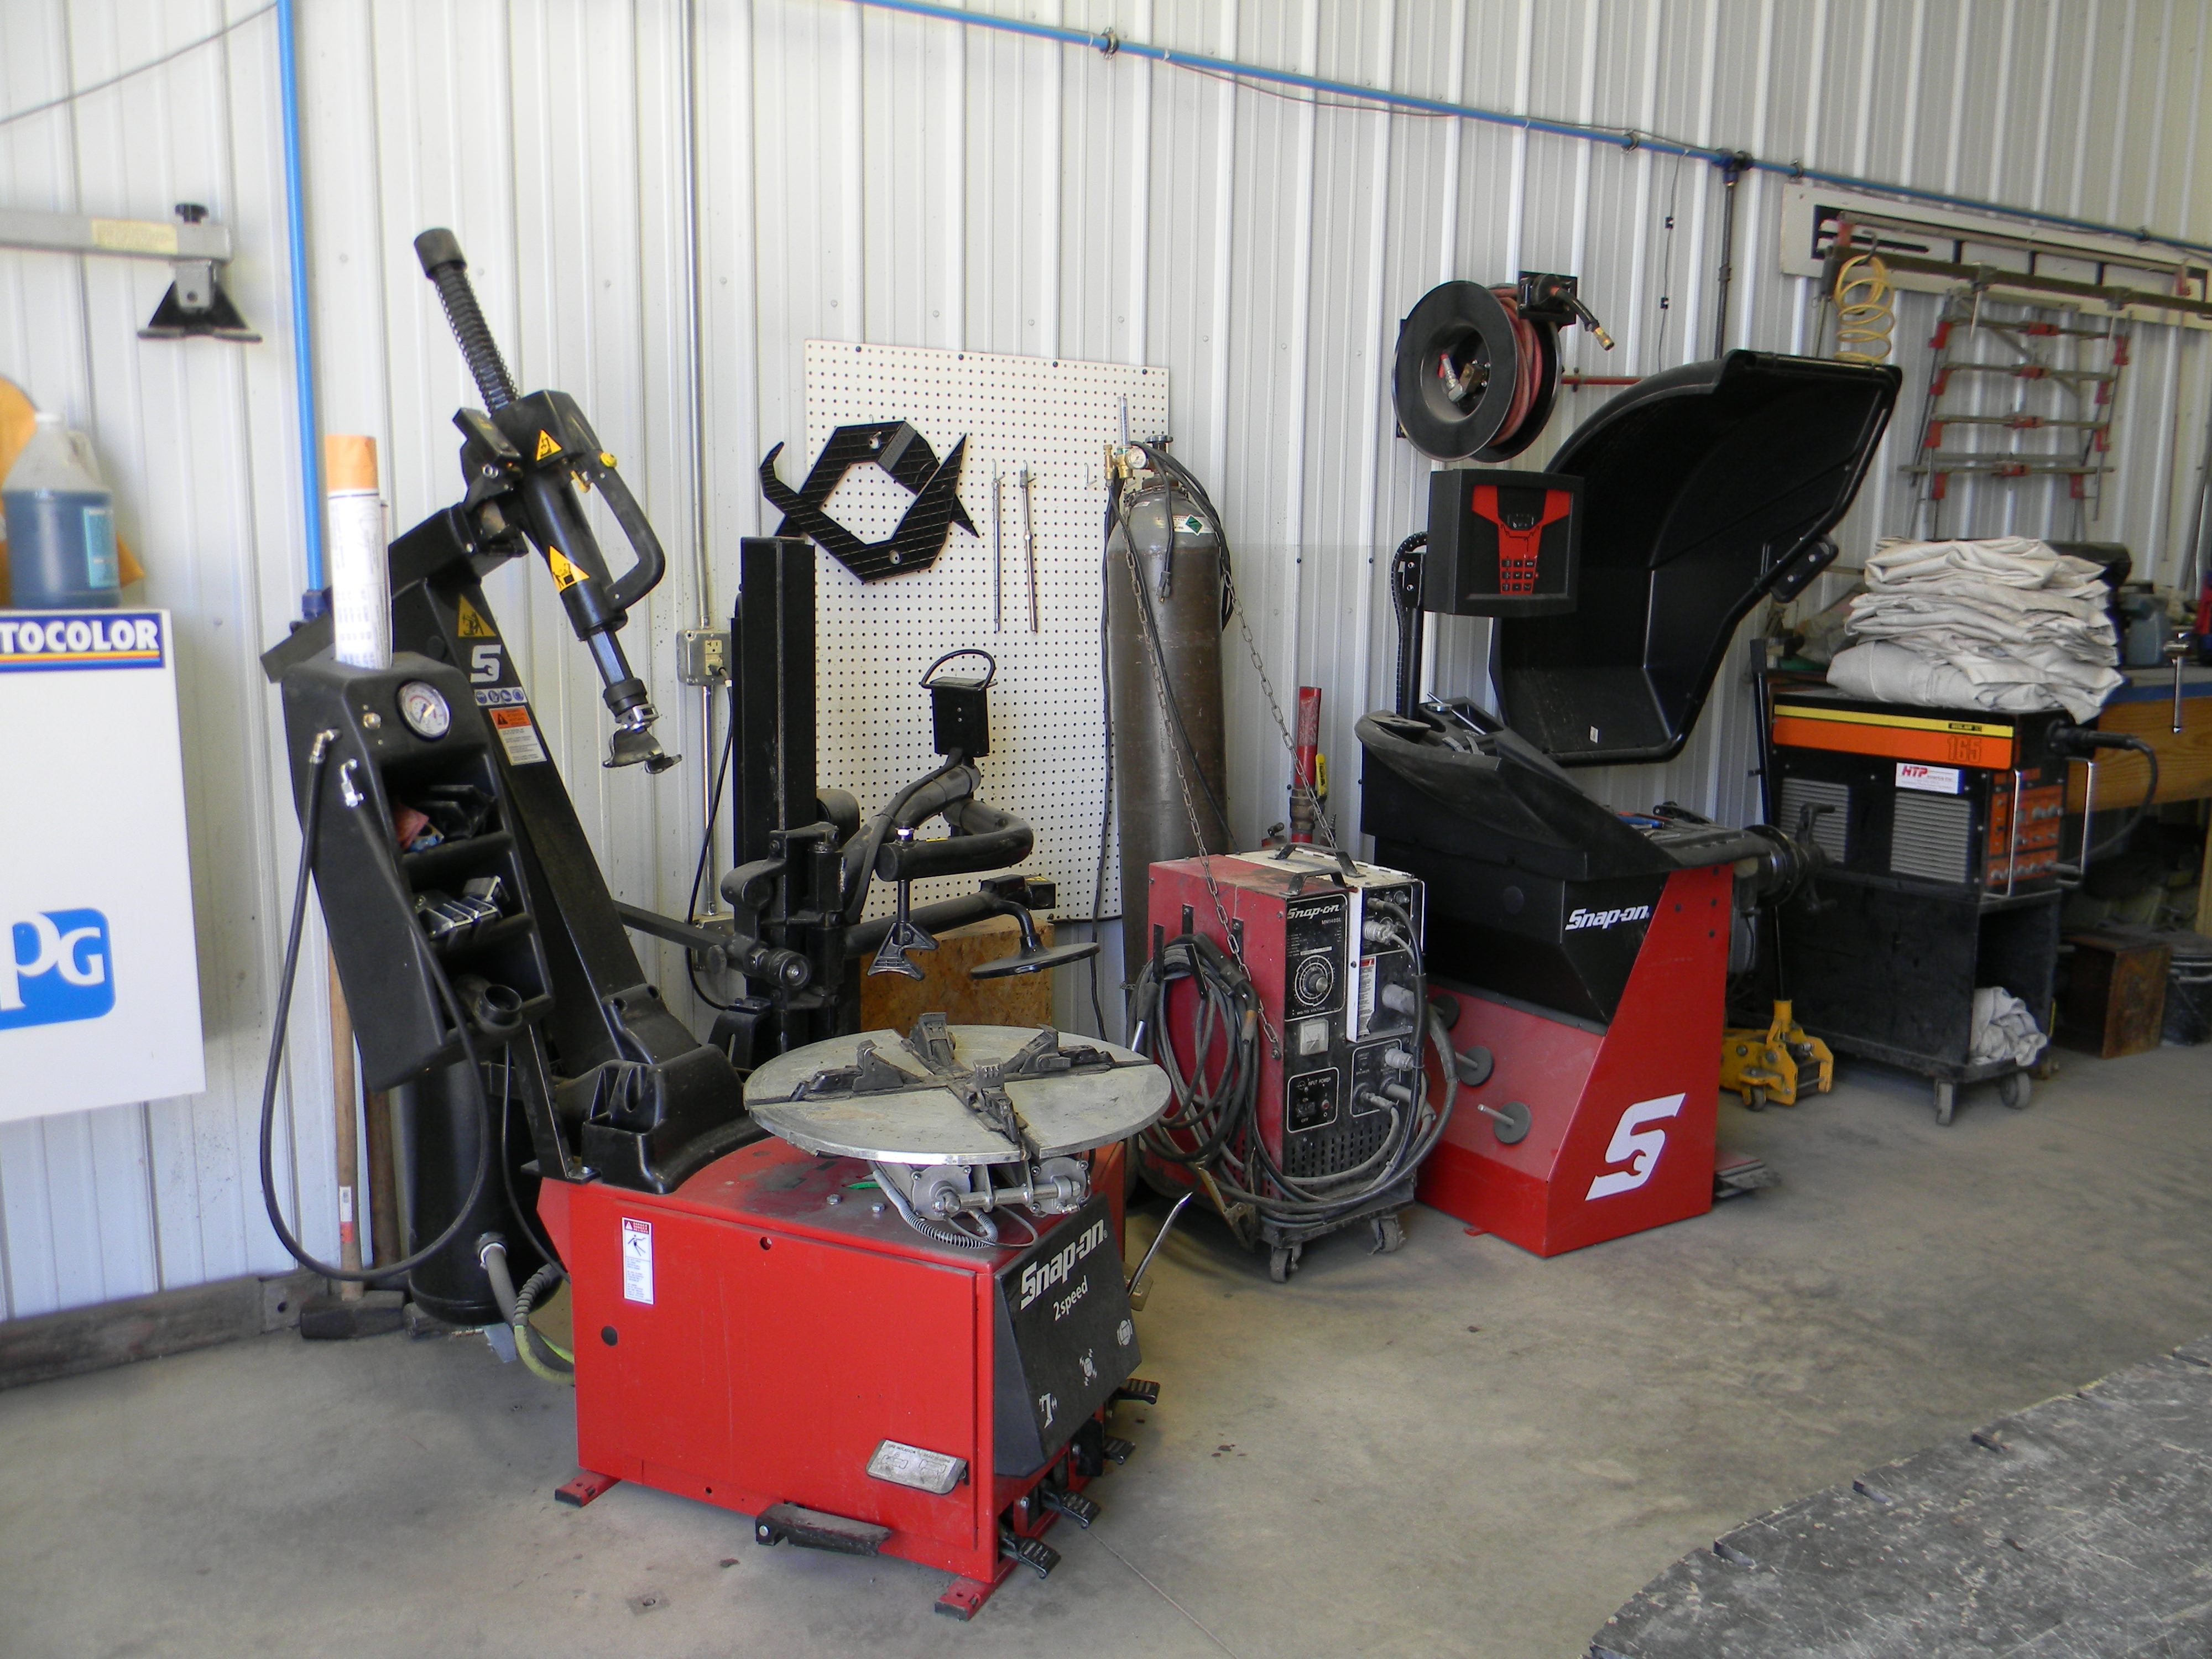 tire balancing & replacement equipment